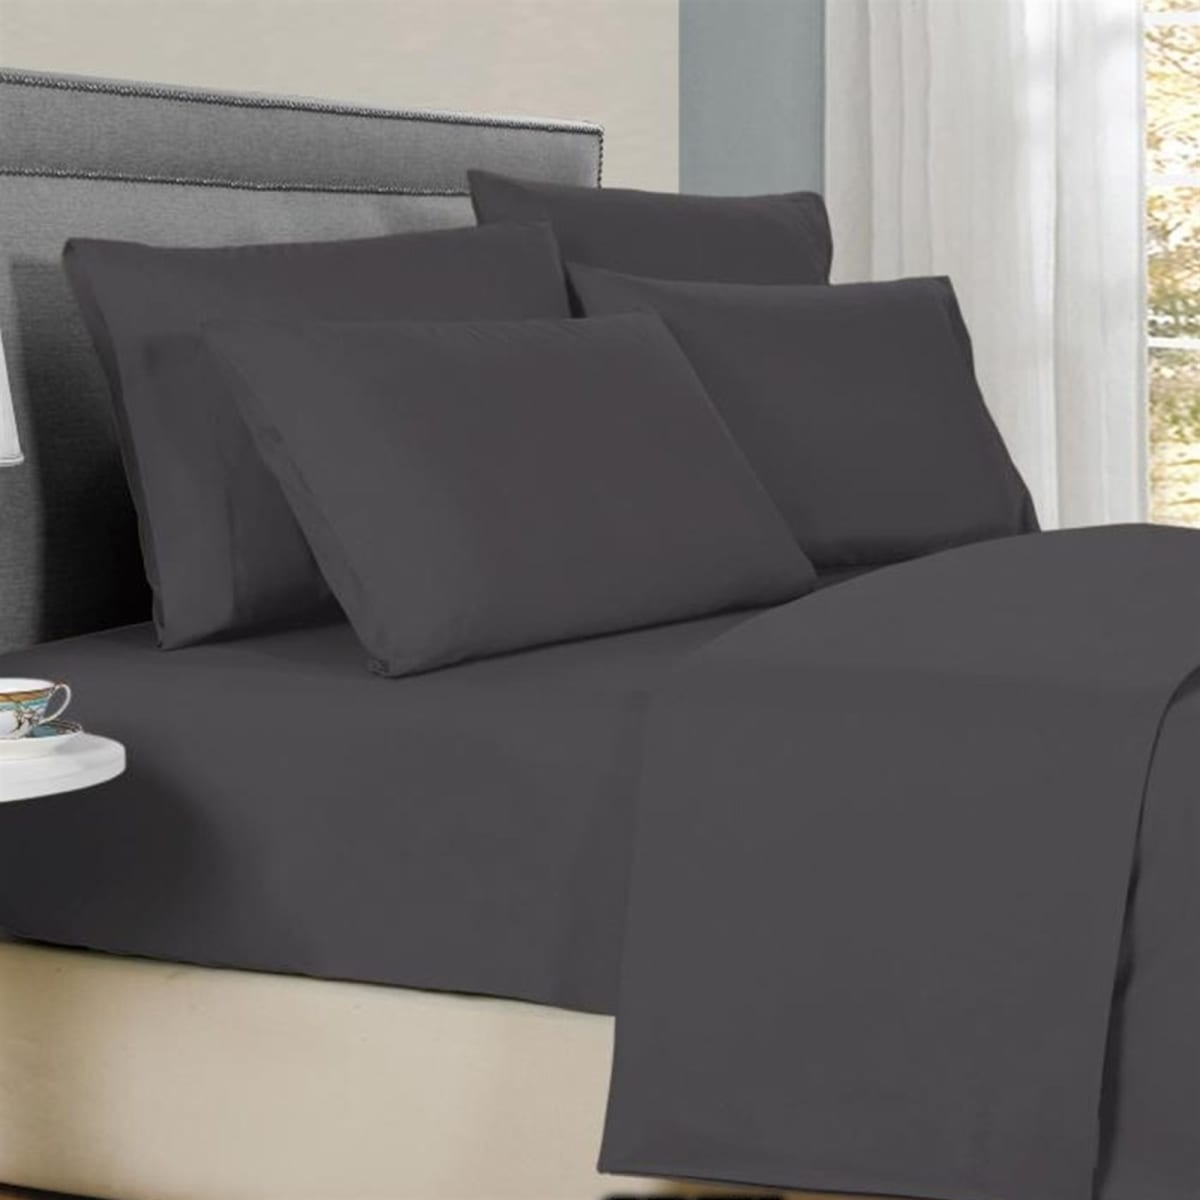 Bamboo Solid Sheet Sets | 1800 Count